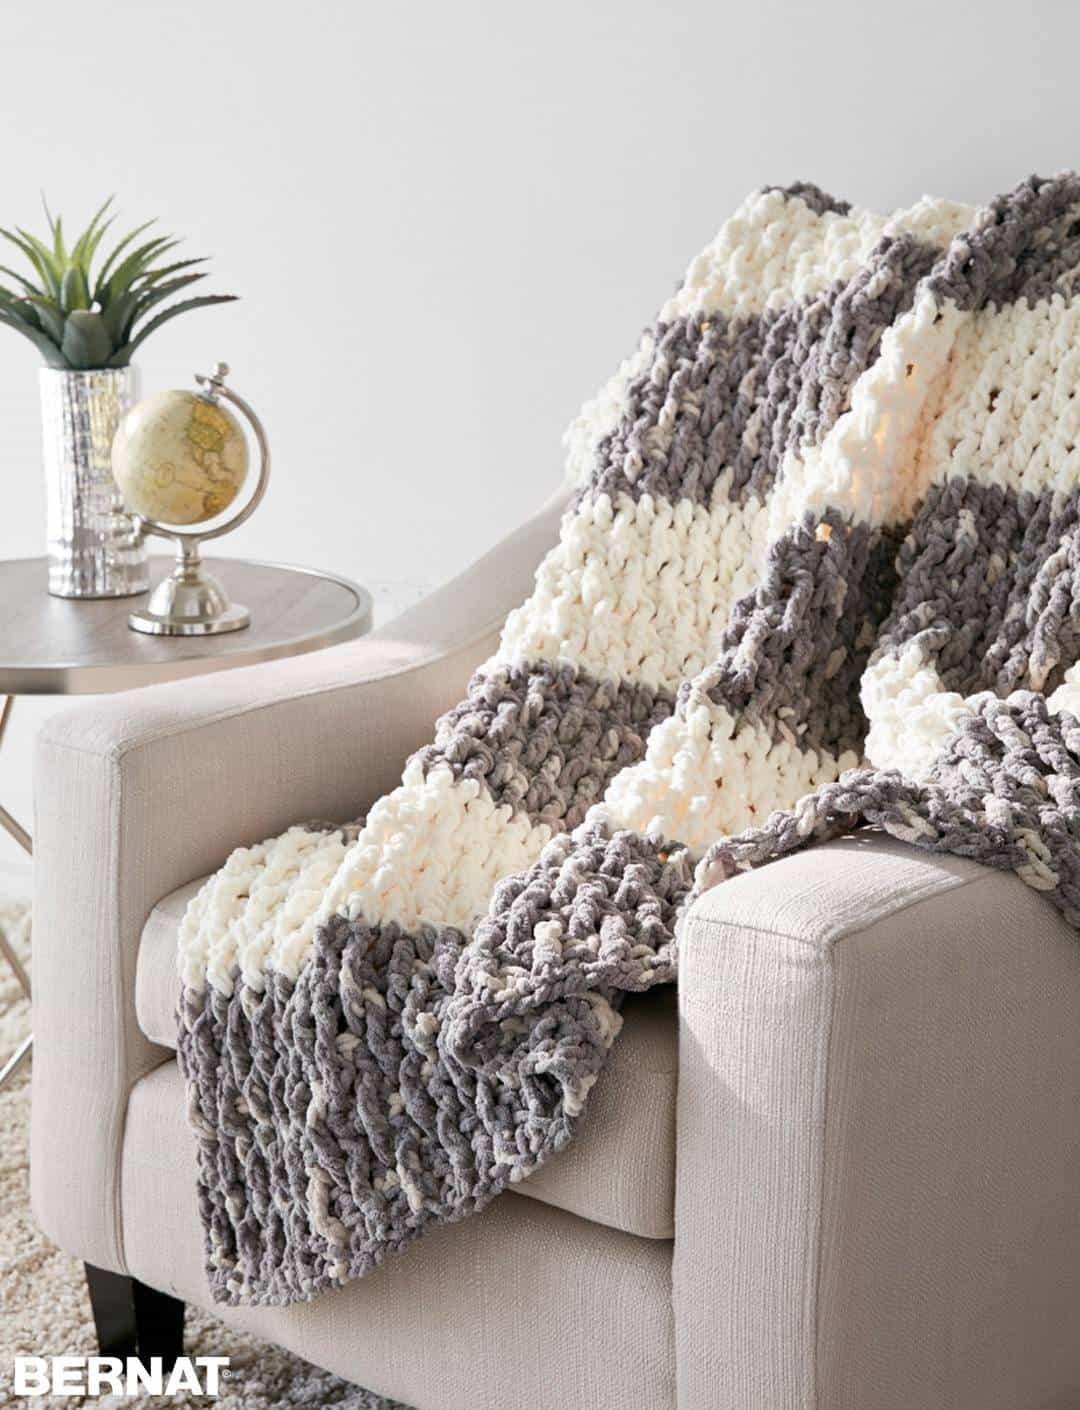 Crochet Throw Awesome 20 Awesome Crochet Blanket Patterns for Beginners Ideal Me Of Luxury 41 Pics Crochet Throw